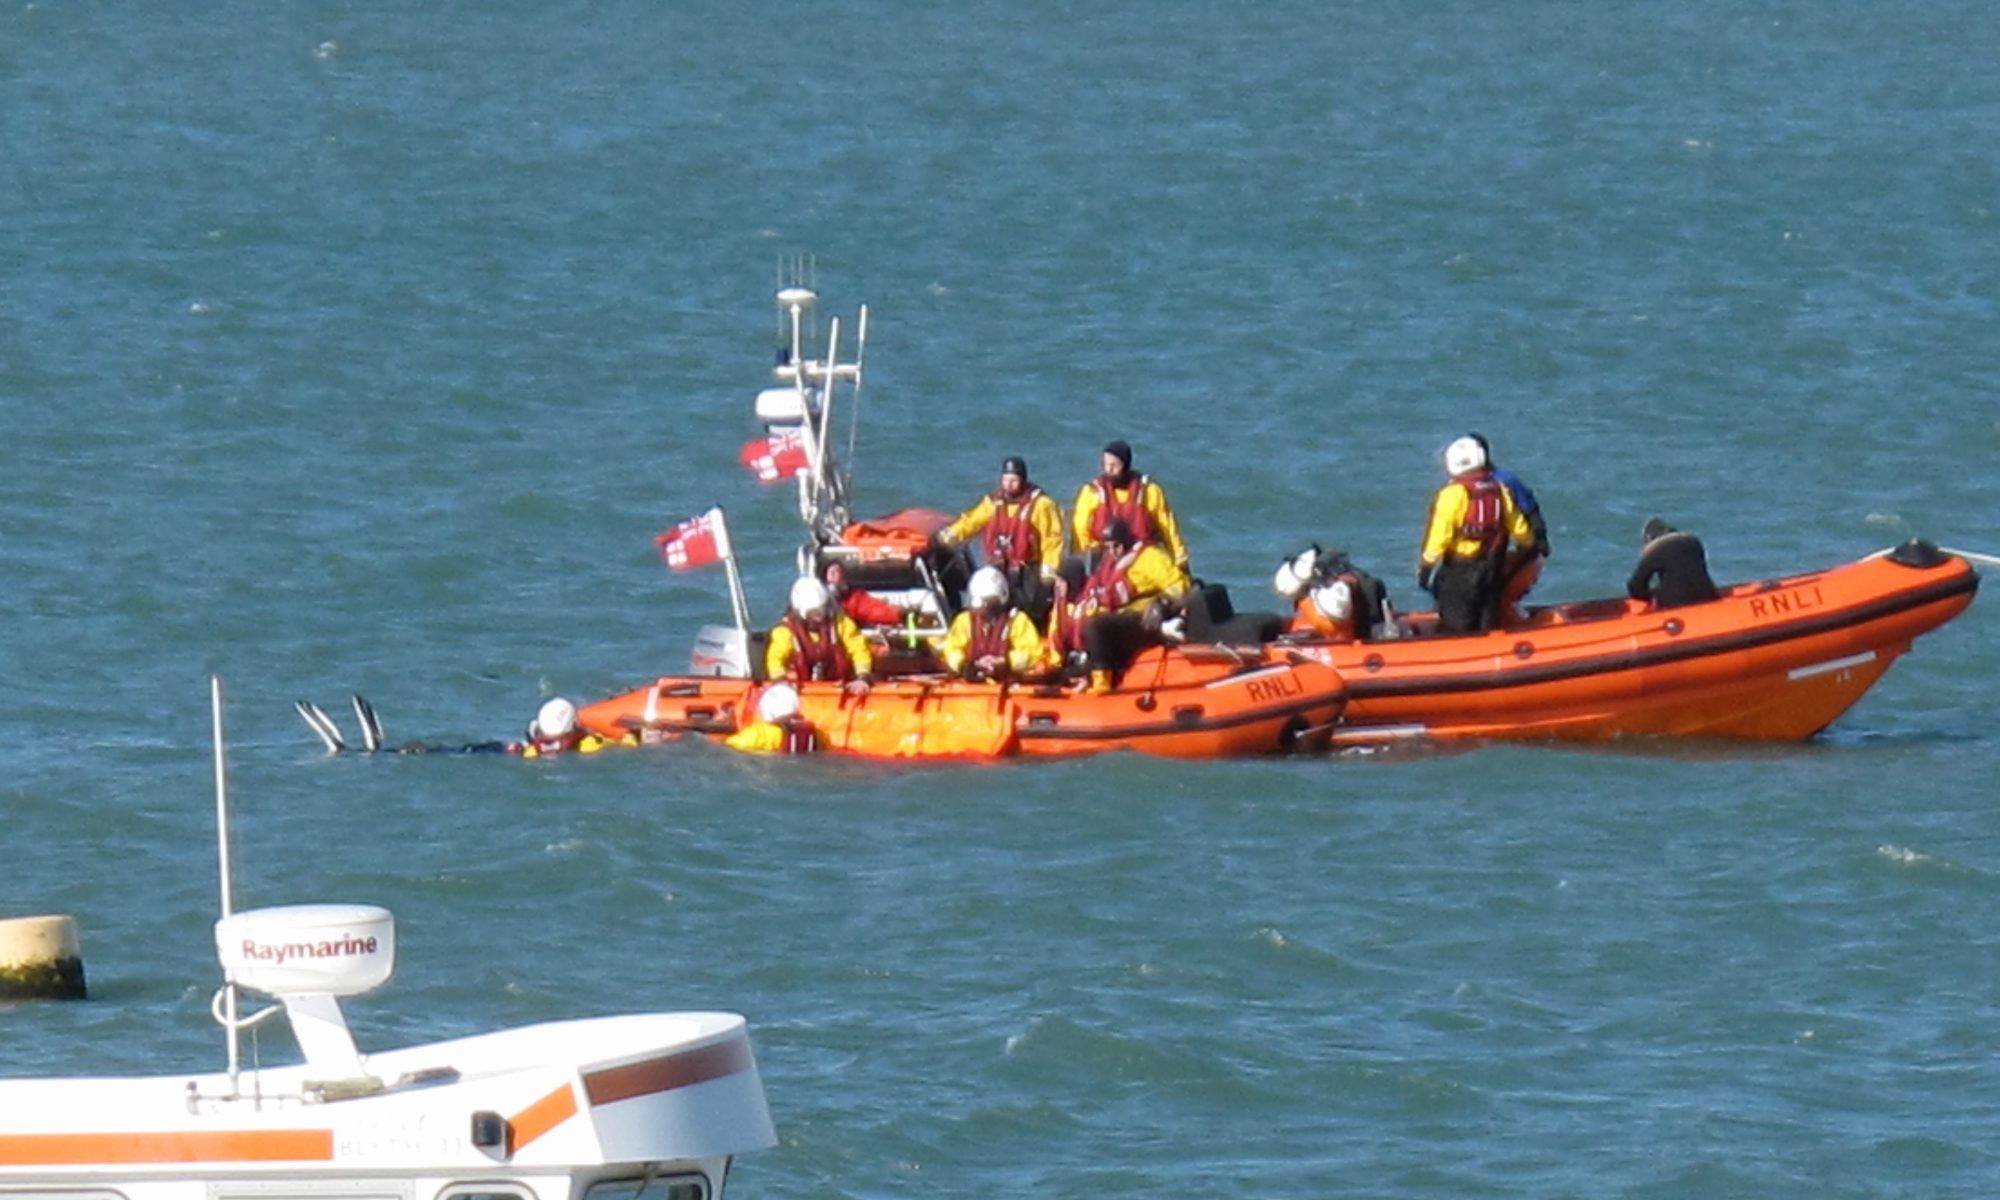 Diver Recovery Drills with Calshot RNLI image